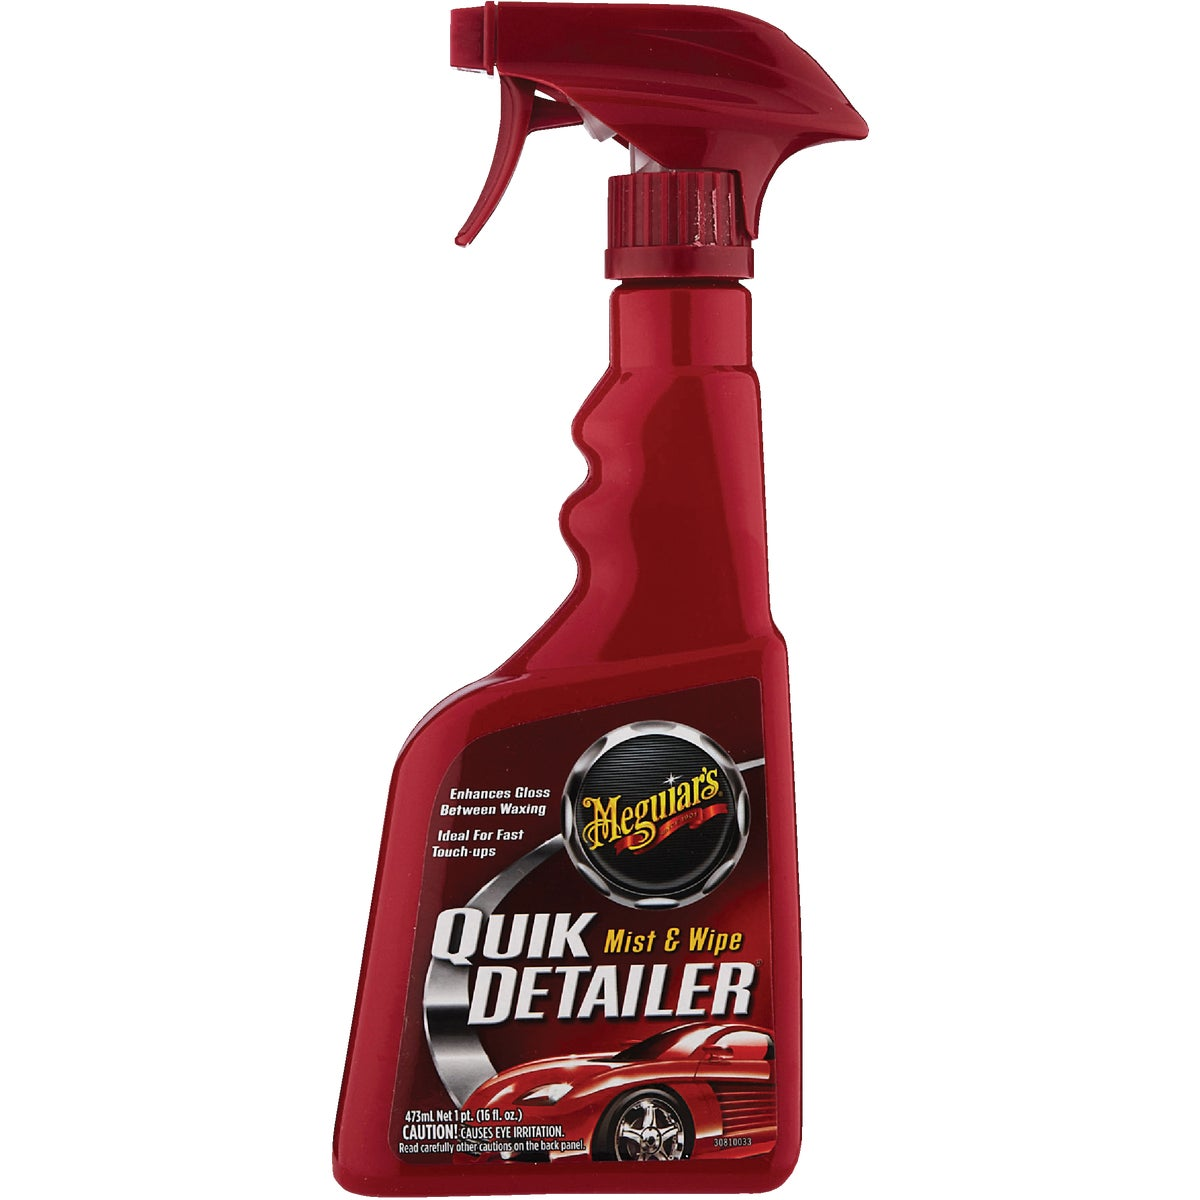 AUTO SPRAY WASH - A3316 by Meguiars Inc